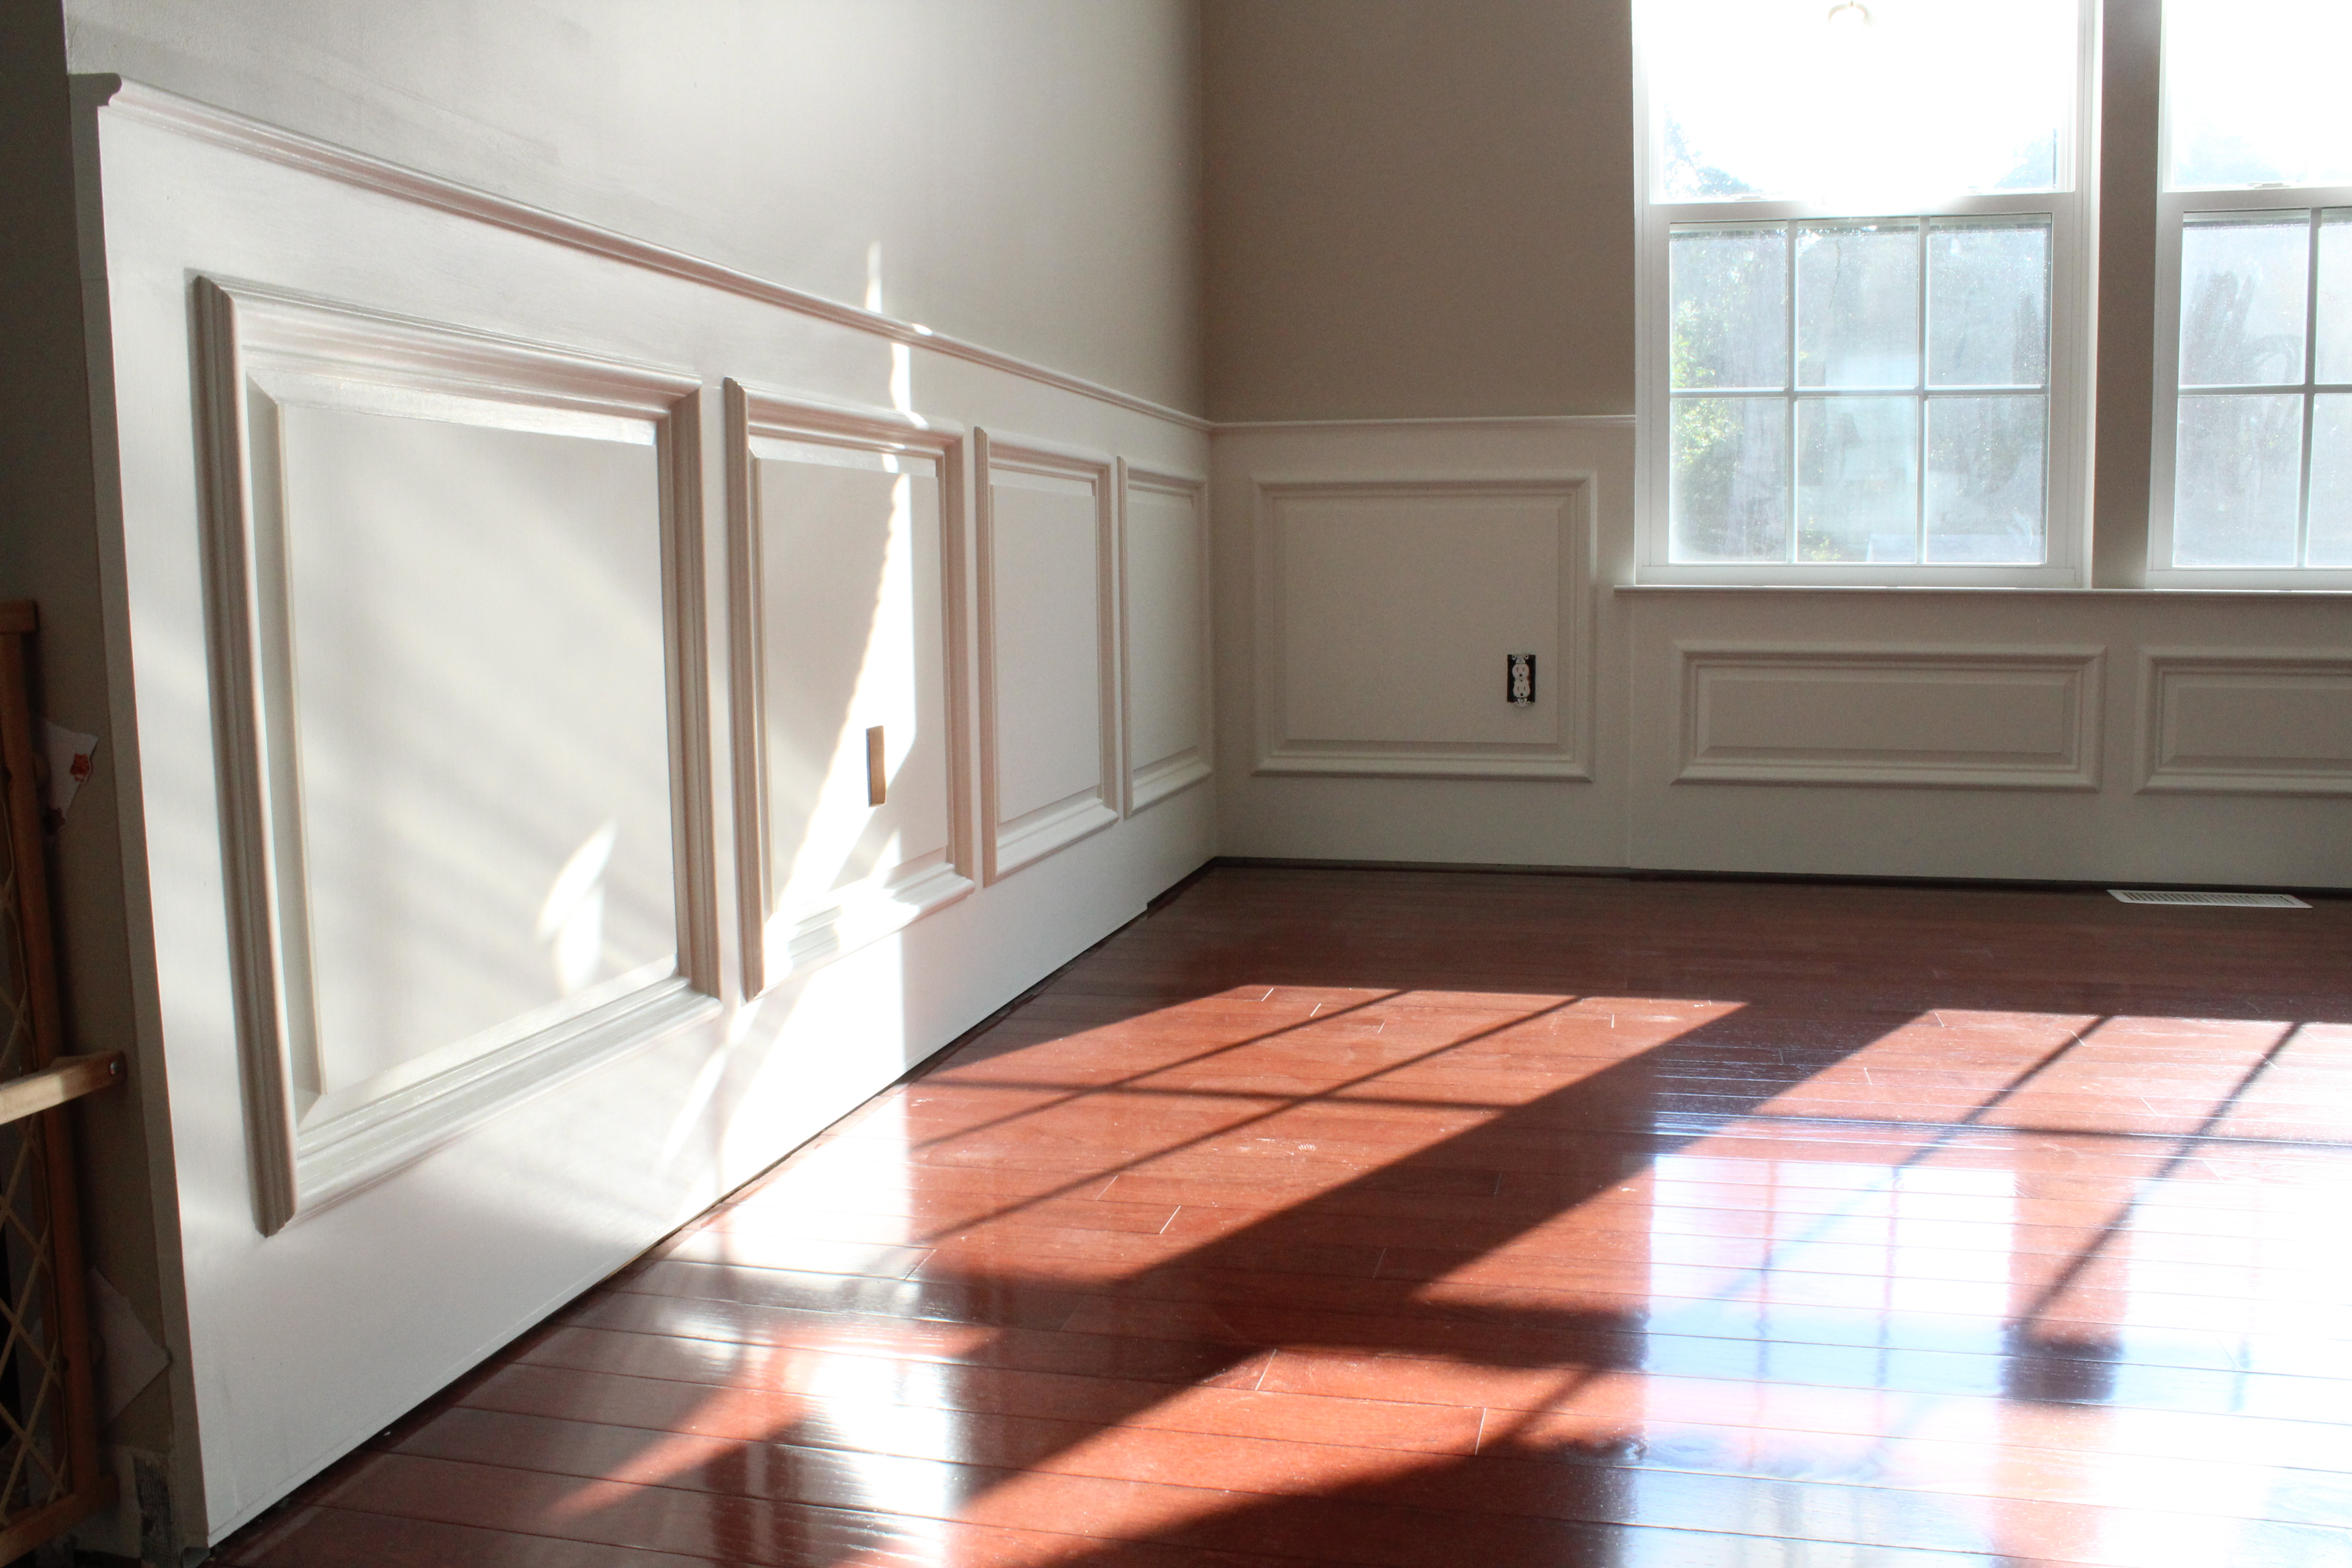 Best ideas about Wainscoting Dining Room . Save or Pin Our Home from Scratch Now.